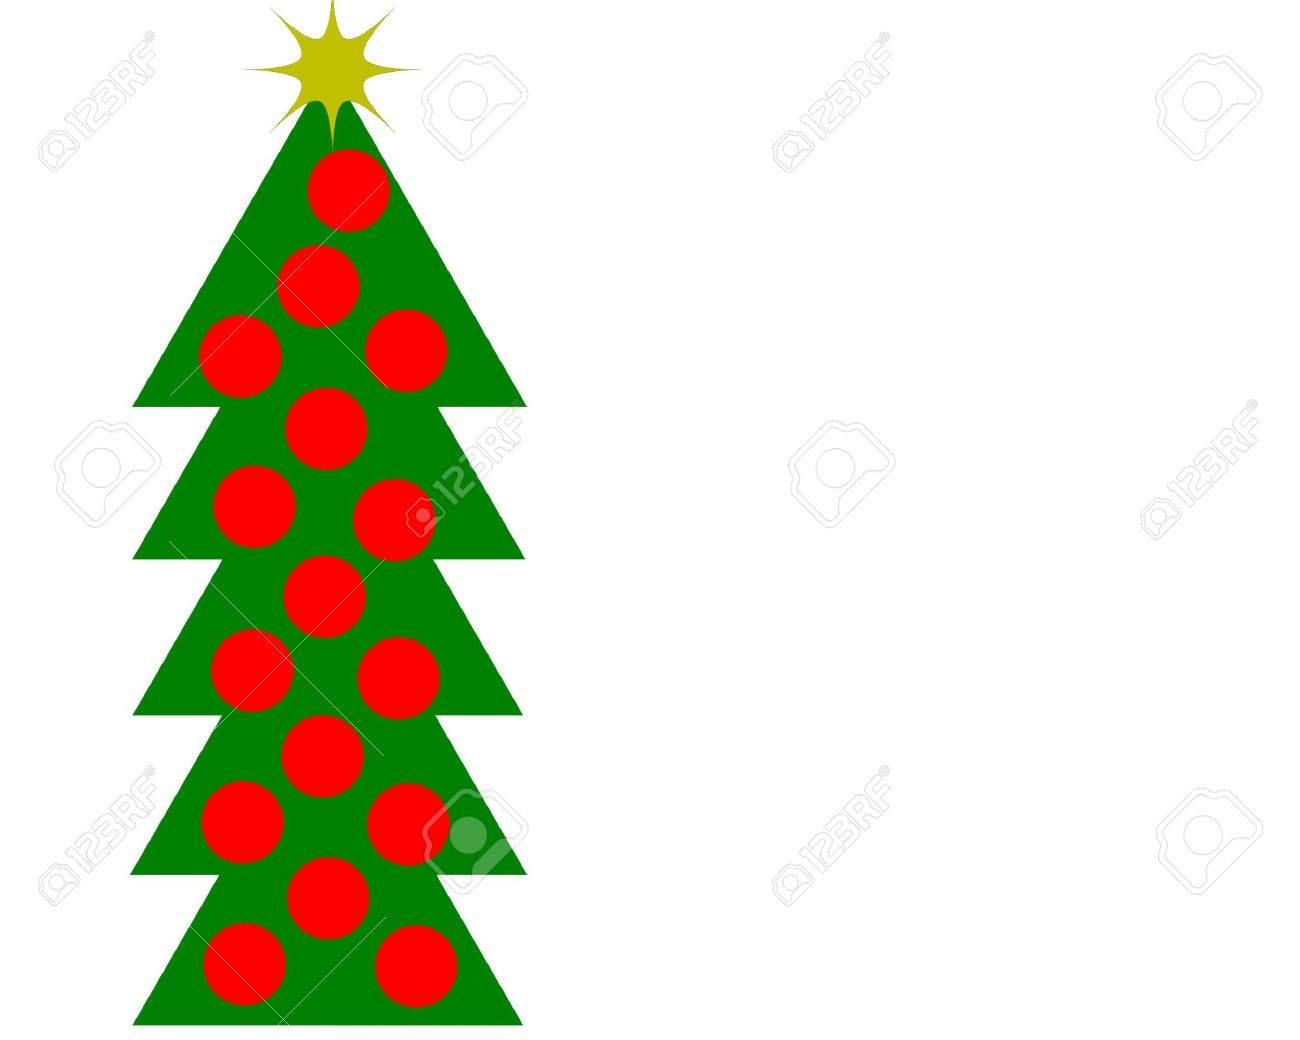 1300x1040 Drawing Of A Christmas Tree With Red Balls And Gold Star Stock